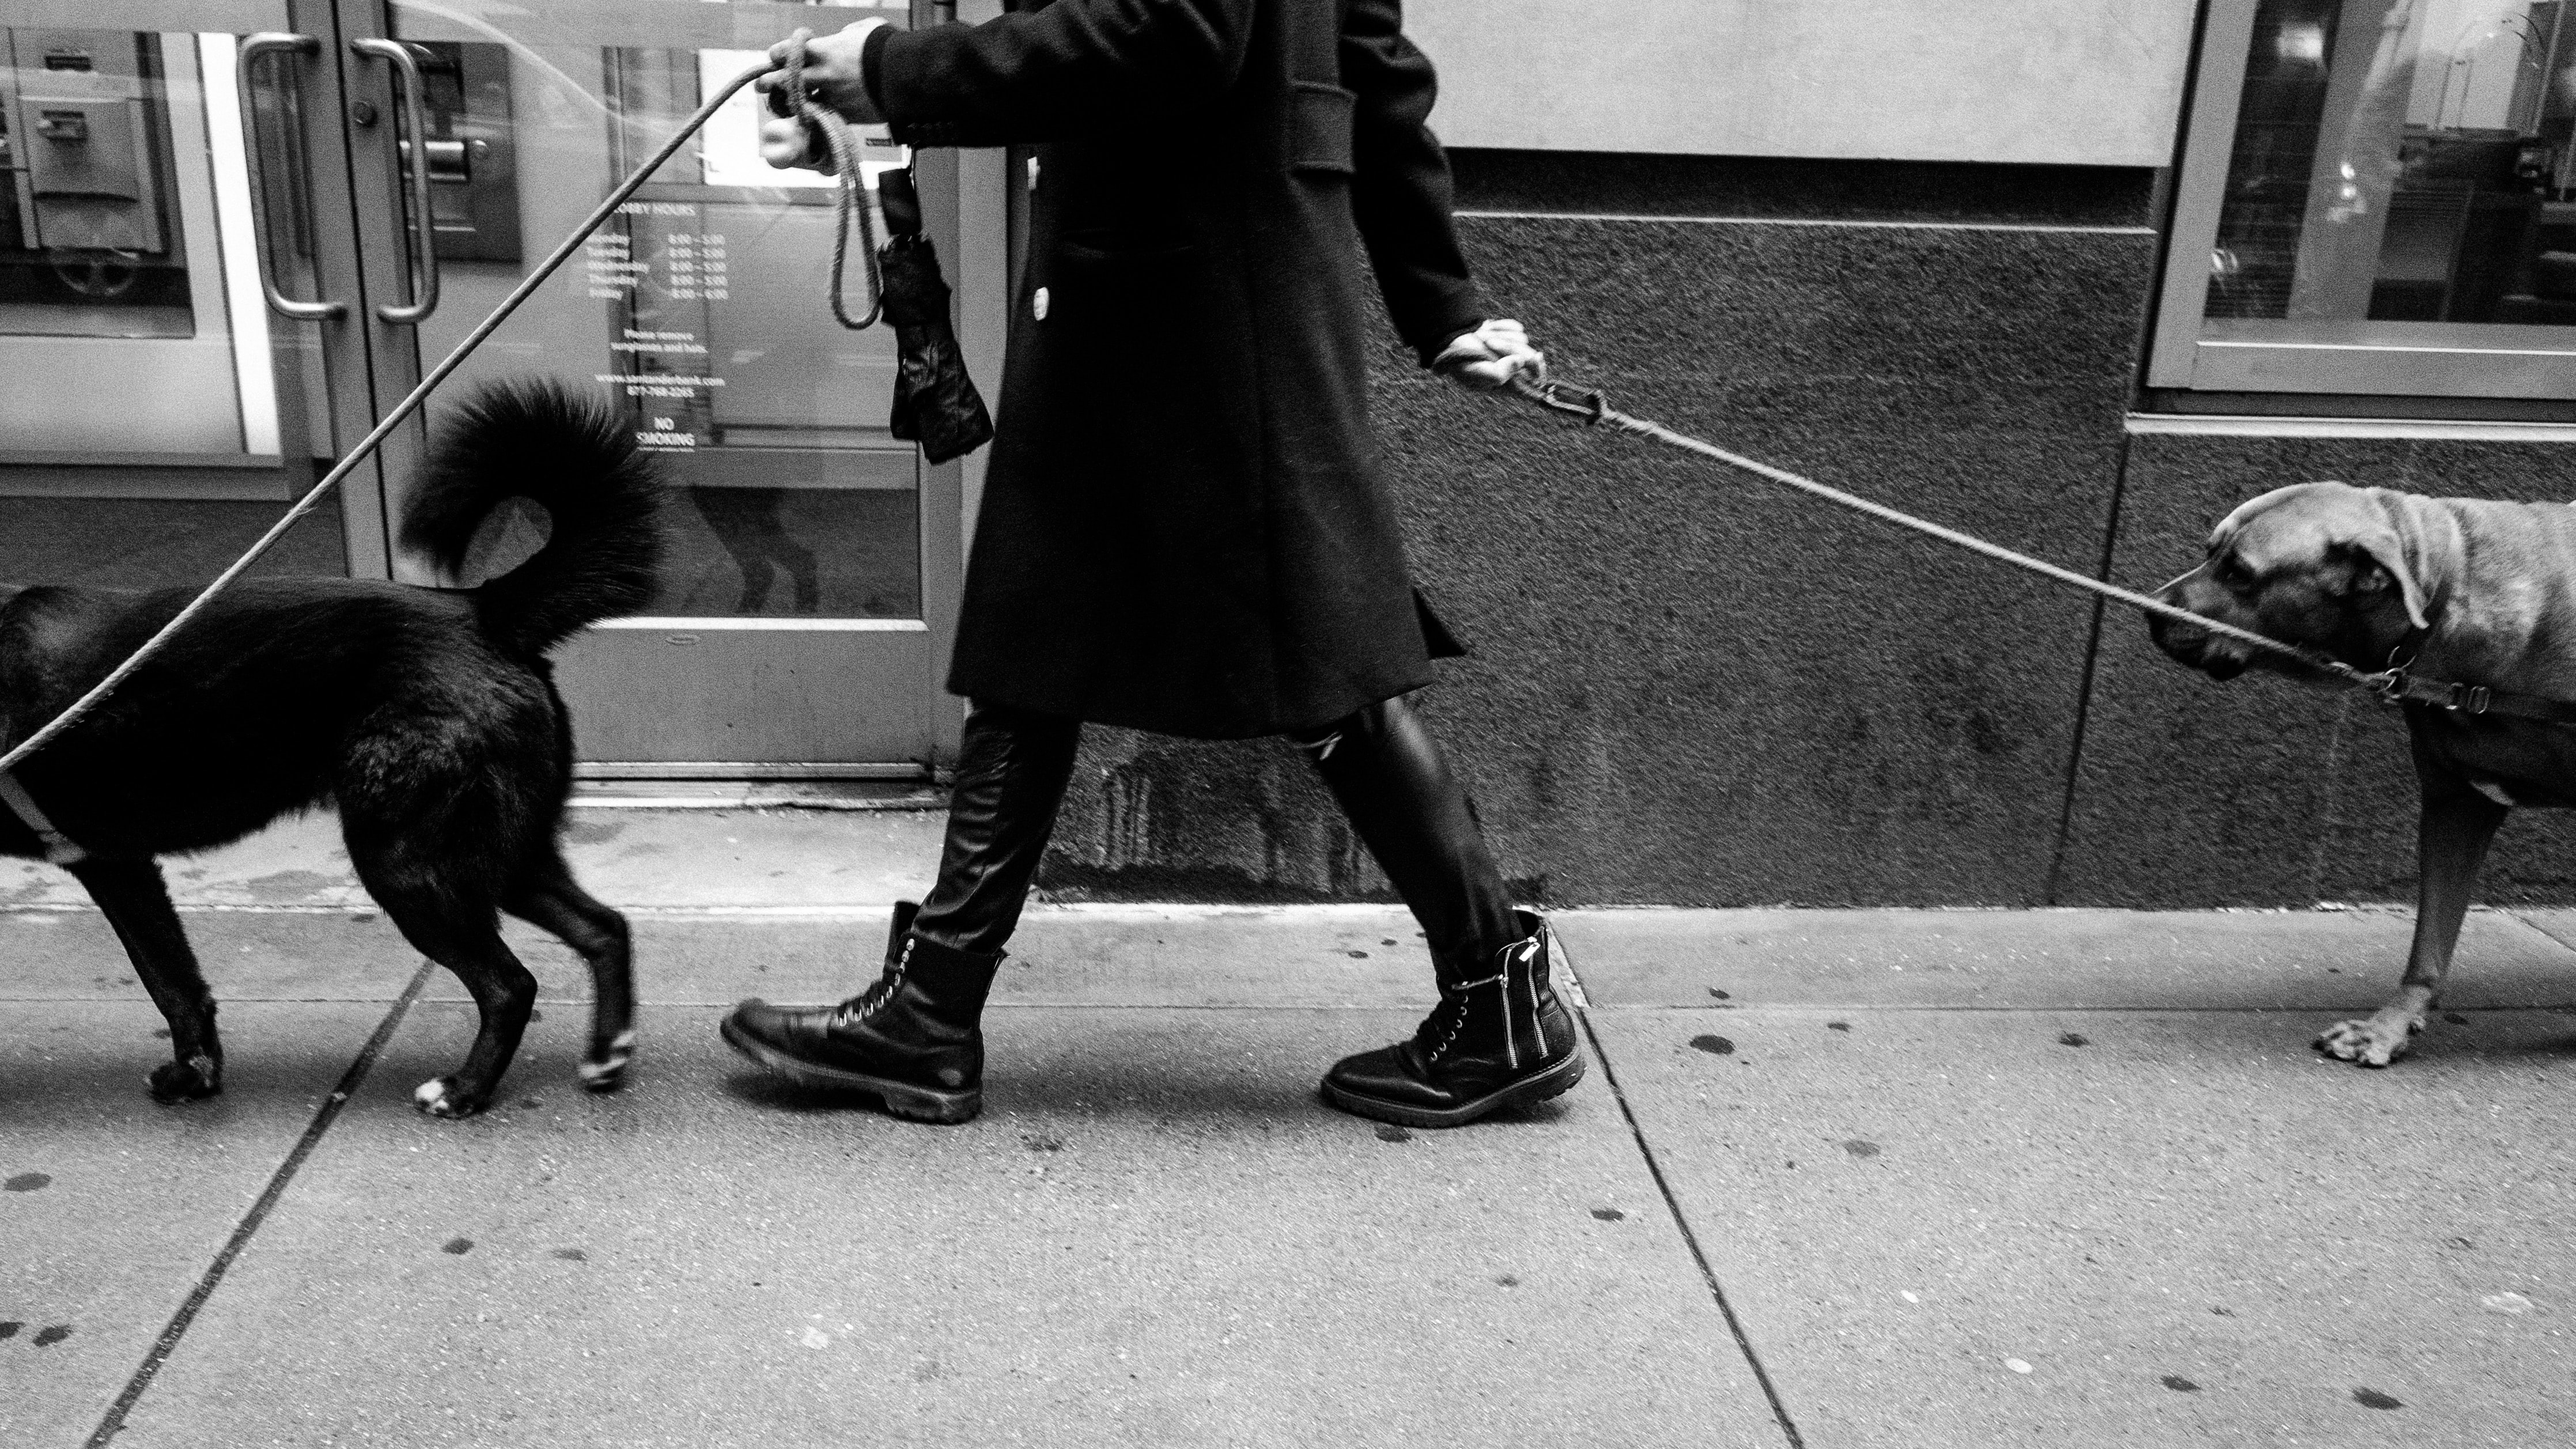 grayscale photography of person in black coat